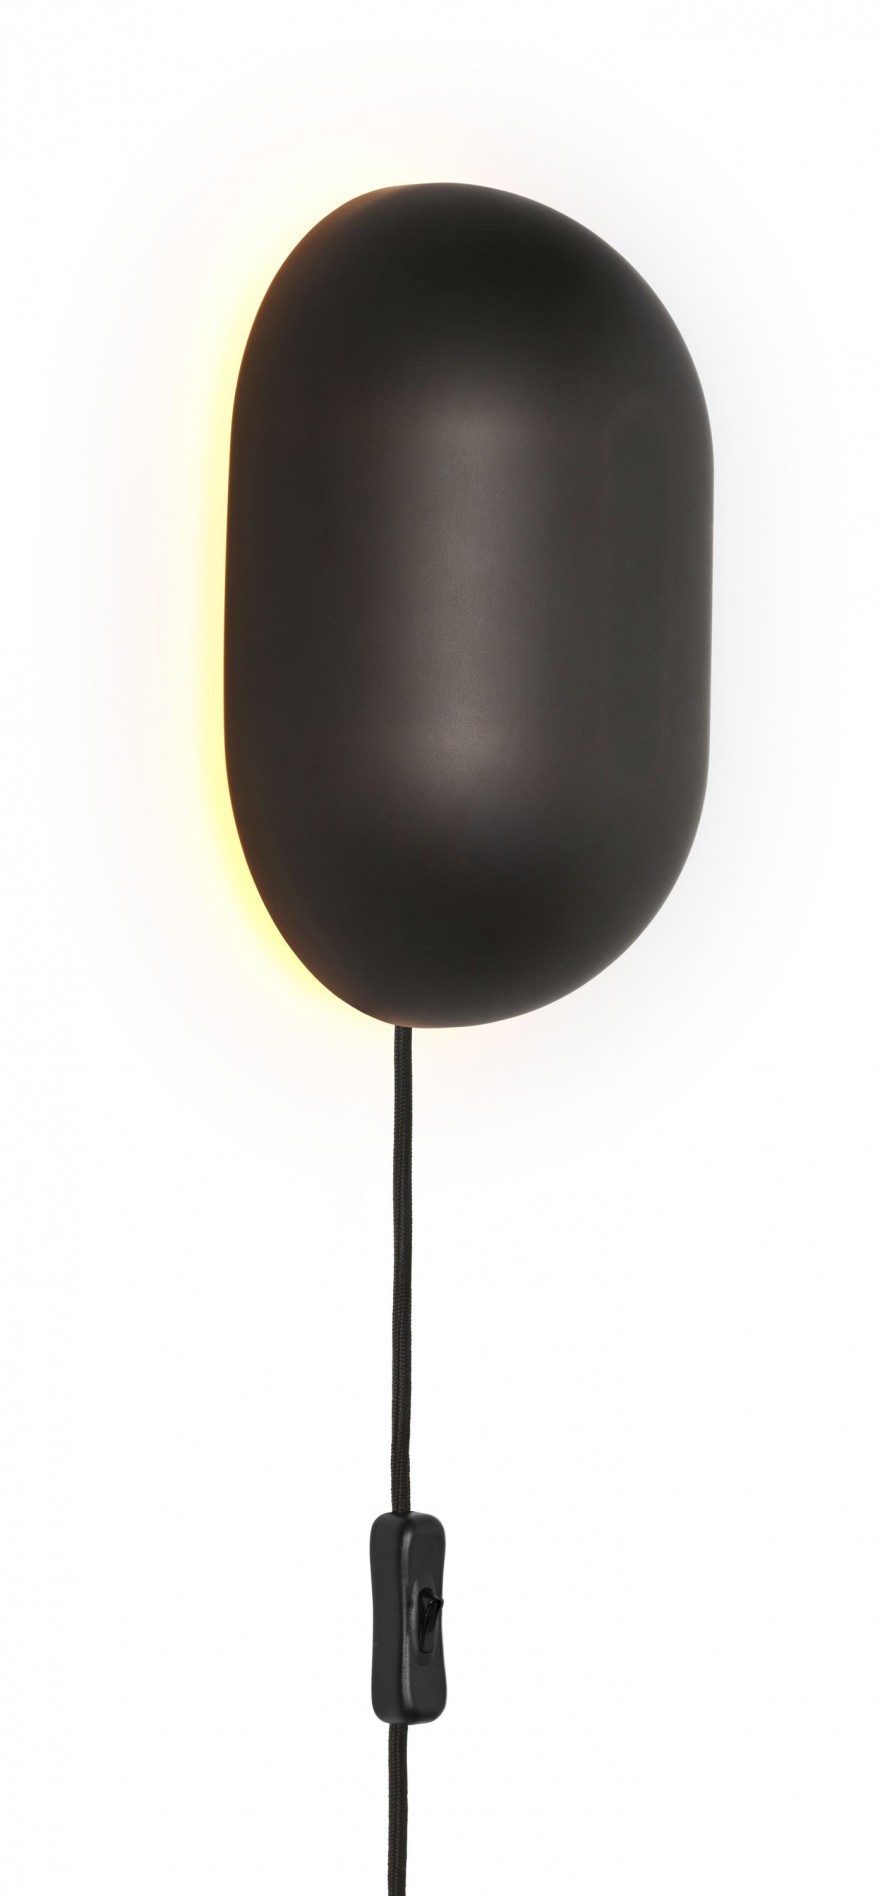 Howard wand lamp